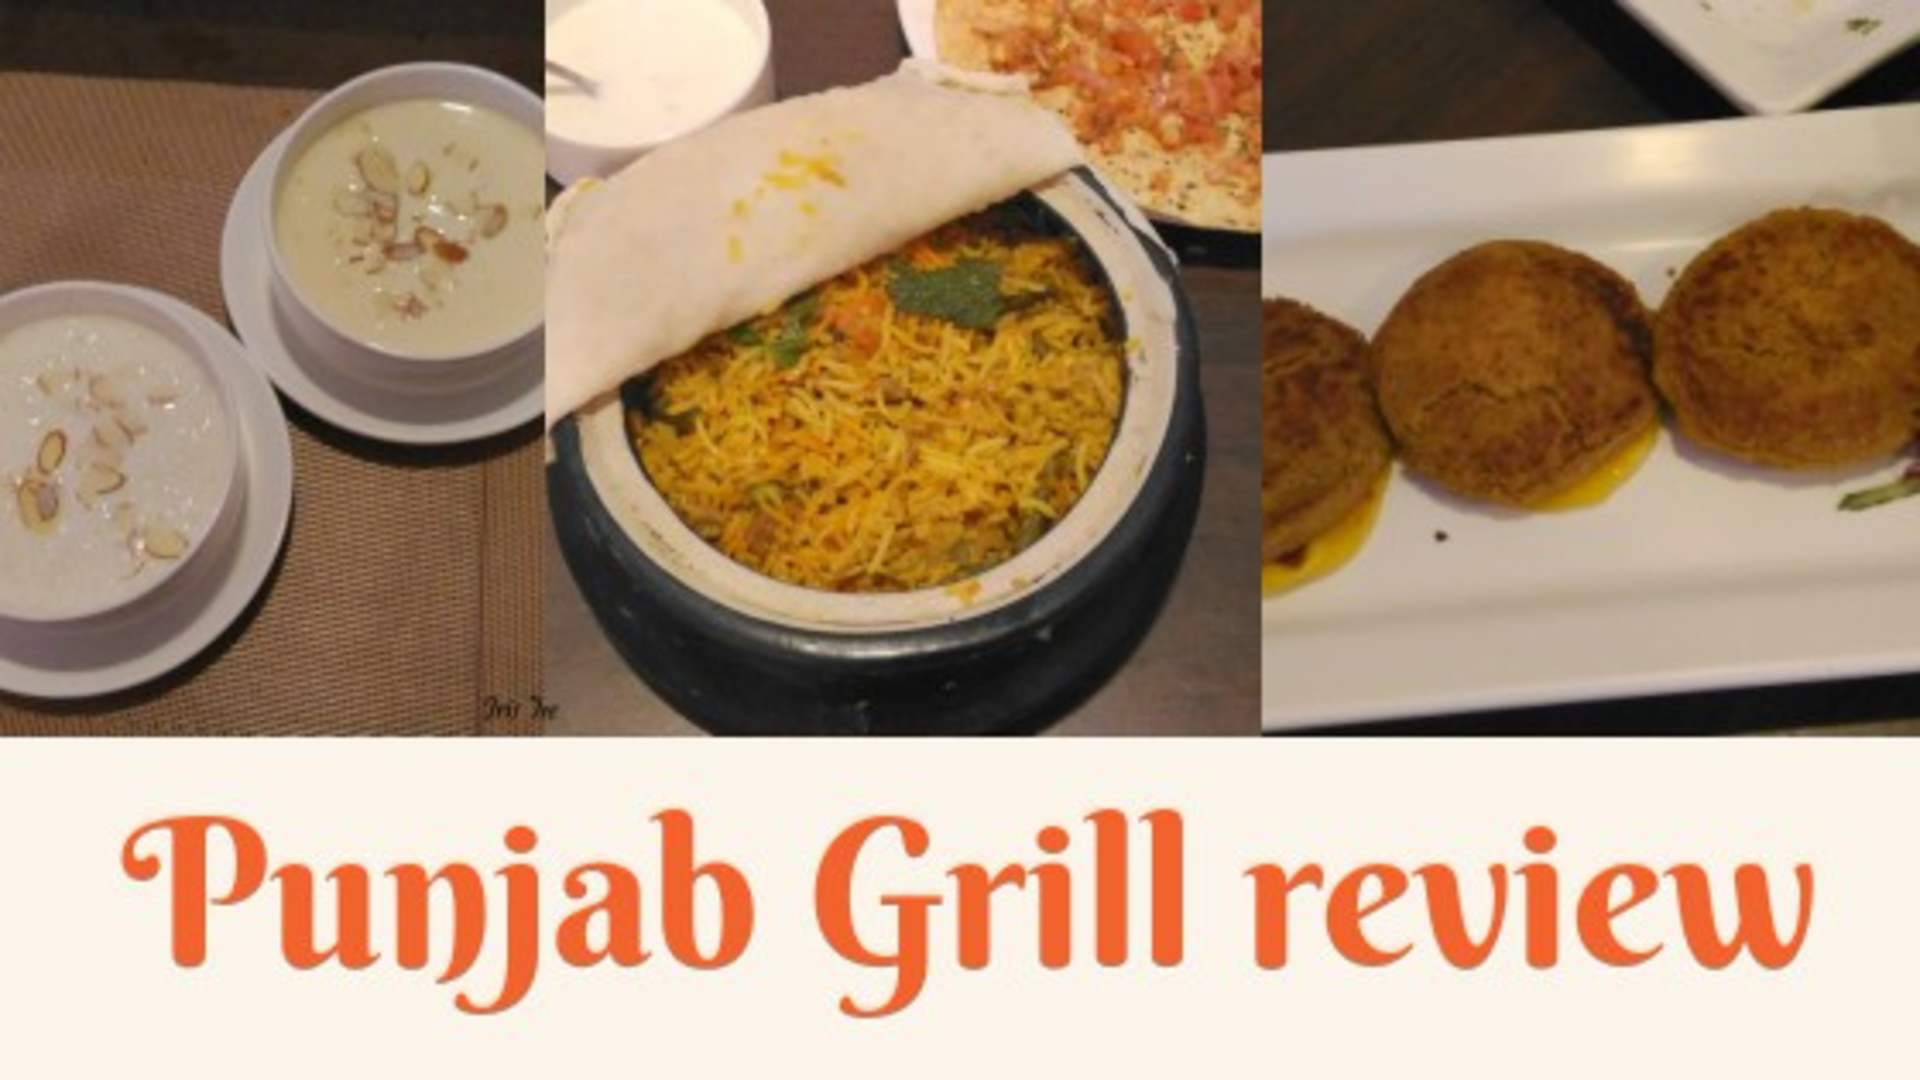 Review of Punjab Grill, Velachery image